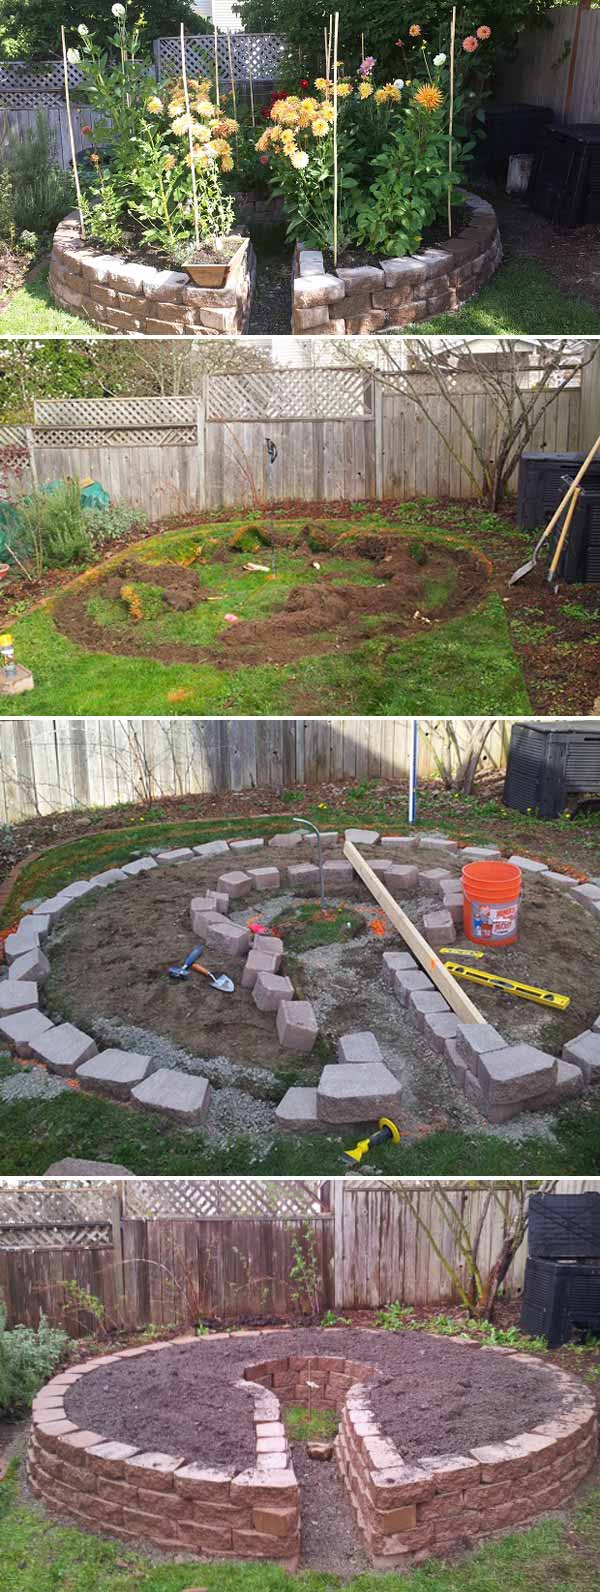 round-raised-garden-beds-7 Painted Rock Garden Design Ideas on painted rocks with fish, cute pet rocks idea, painted flowers idea, painted rocks craft, outside front yard halloween decoration idea, painted kitchen idea, painted rocks with quotes, painted wall idea,